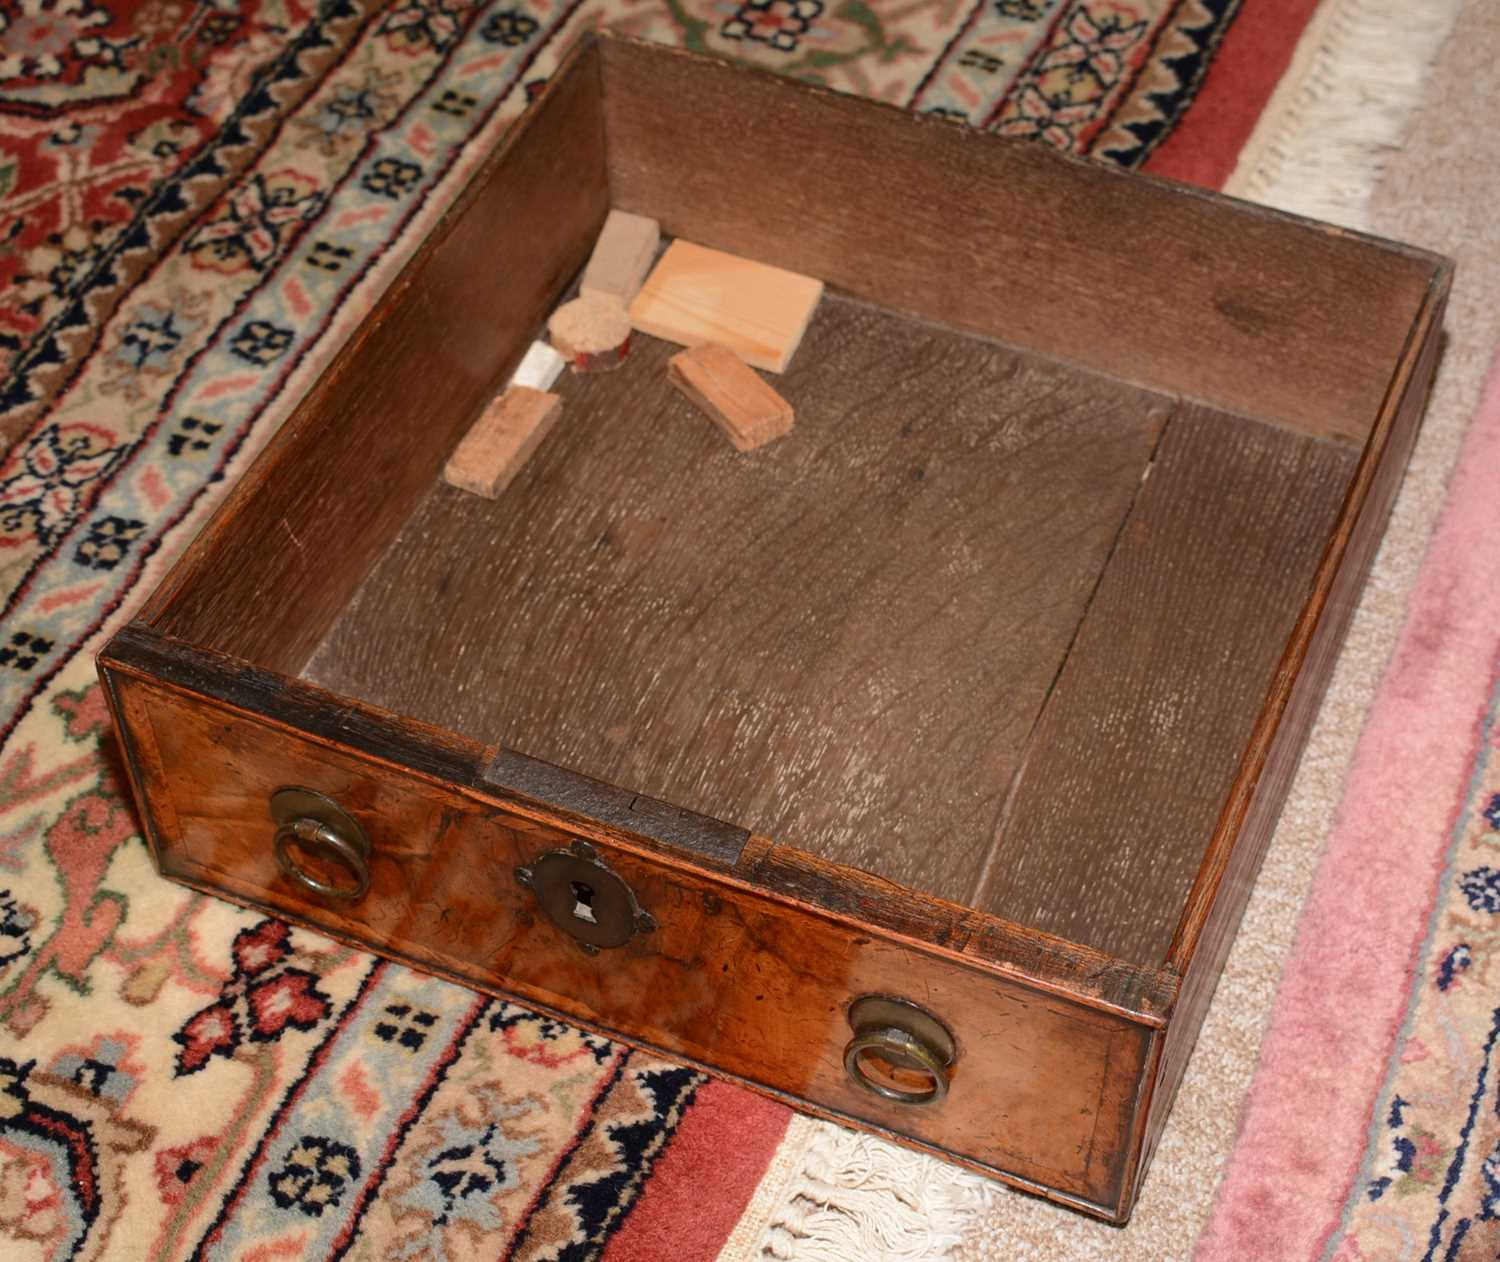 Early 18th Century walnut bachelors chest - Image 33 of 39